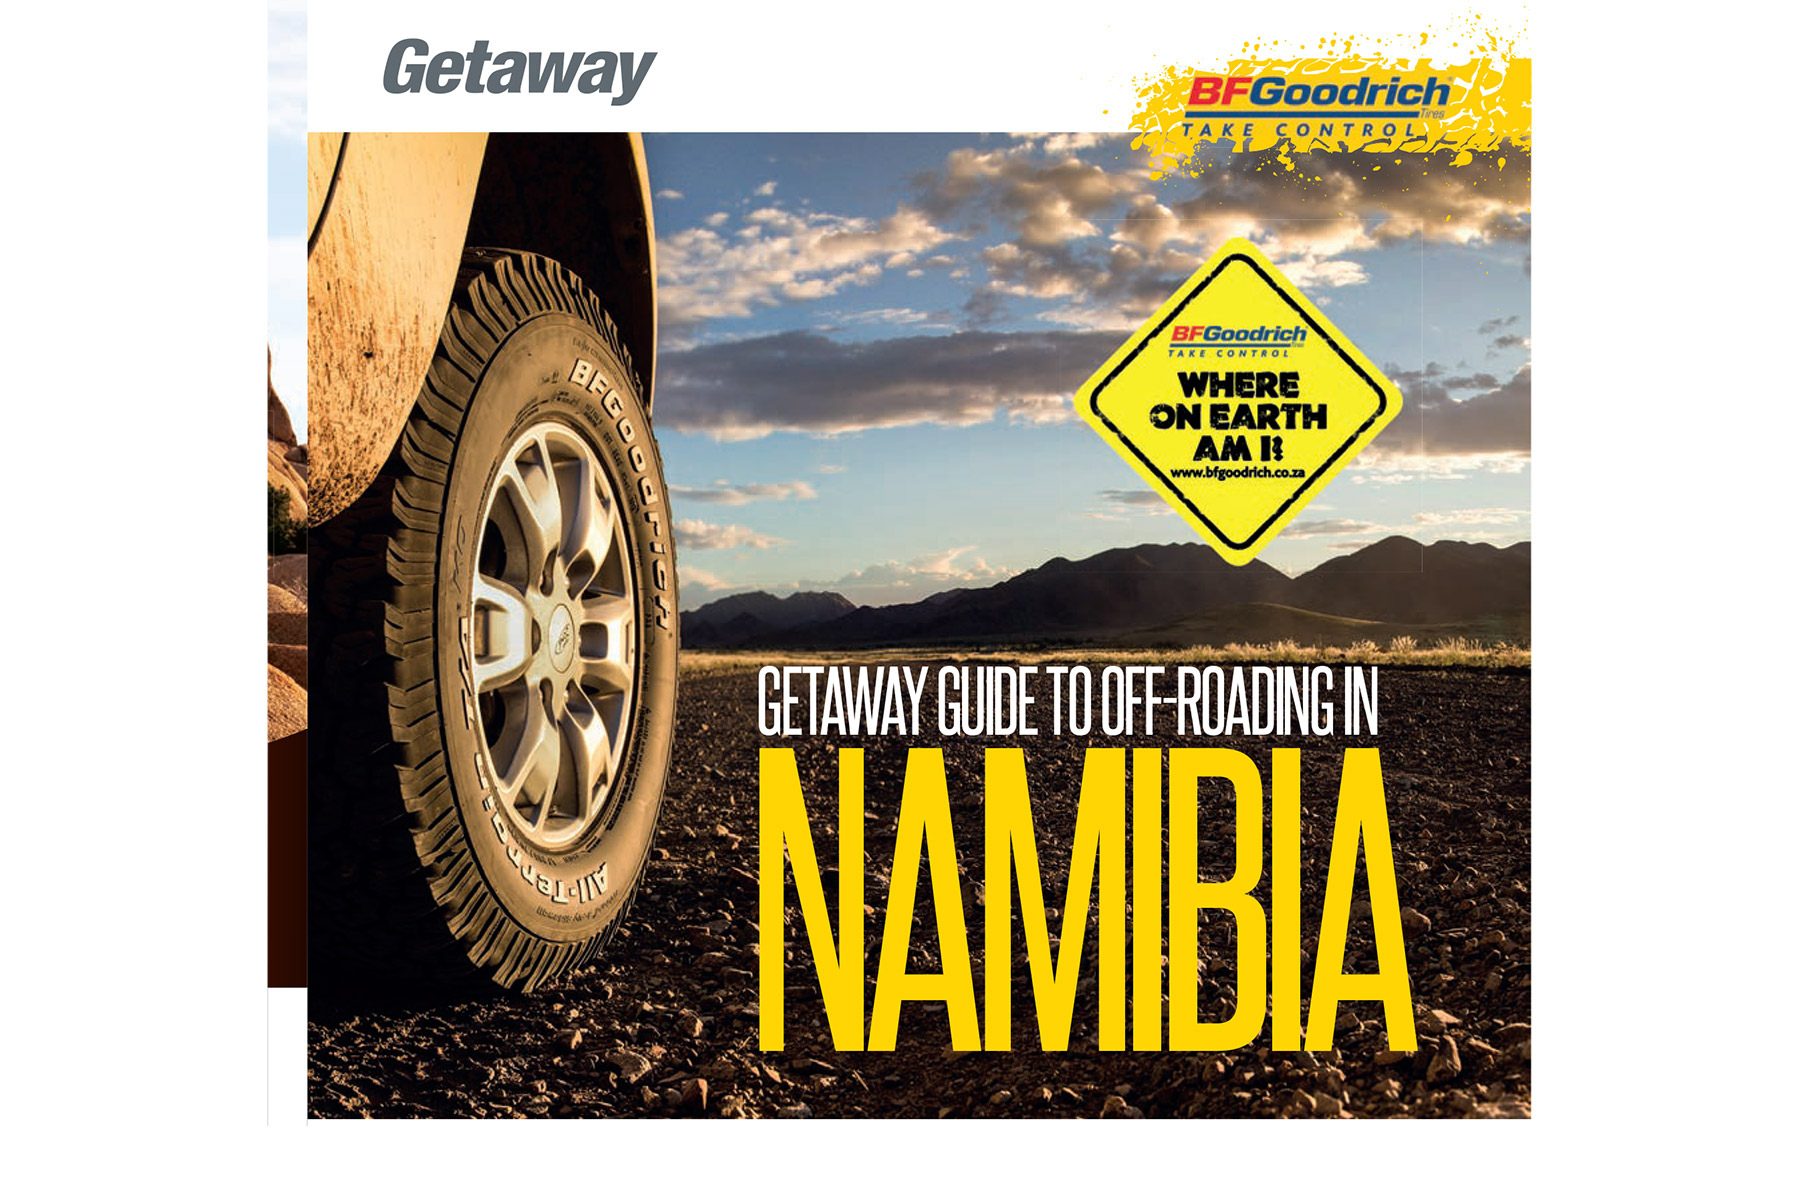 Getaway Magazine - Getaway guide to the best 4x4 routes, national parks and campsites in Namibia, co-authored with Cameron Ewart-Smith for Getaway magazine and BFGoodrich.